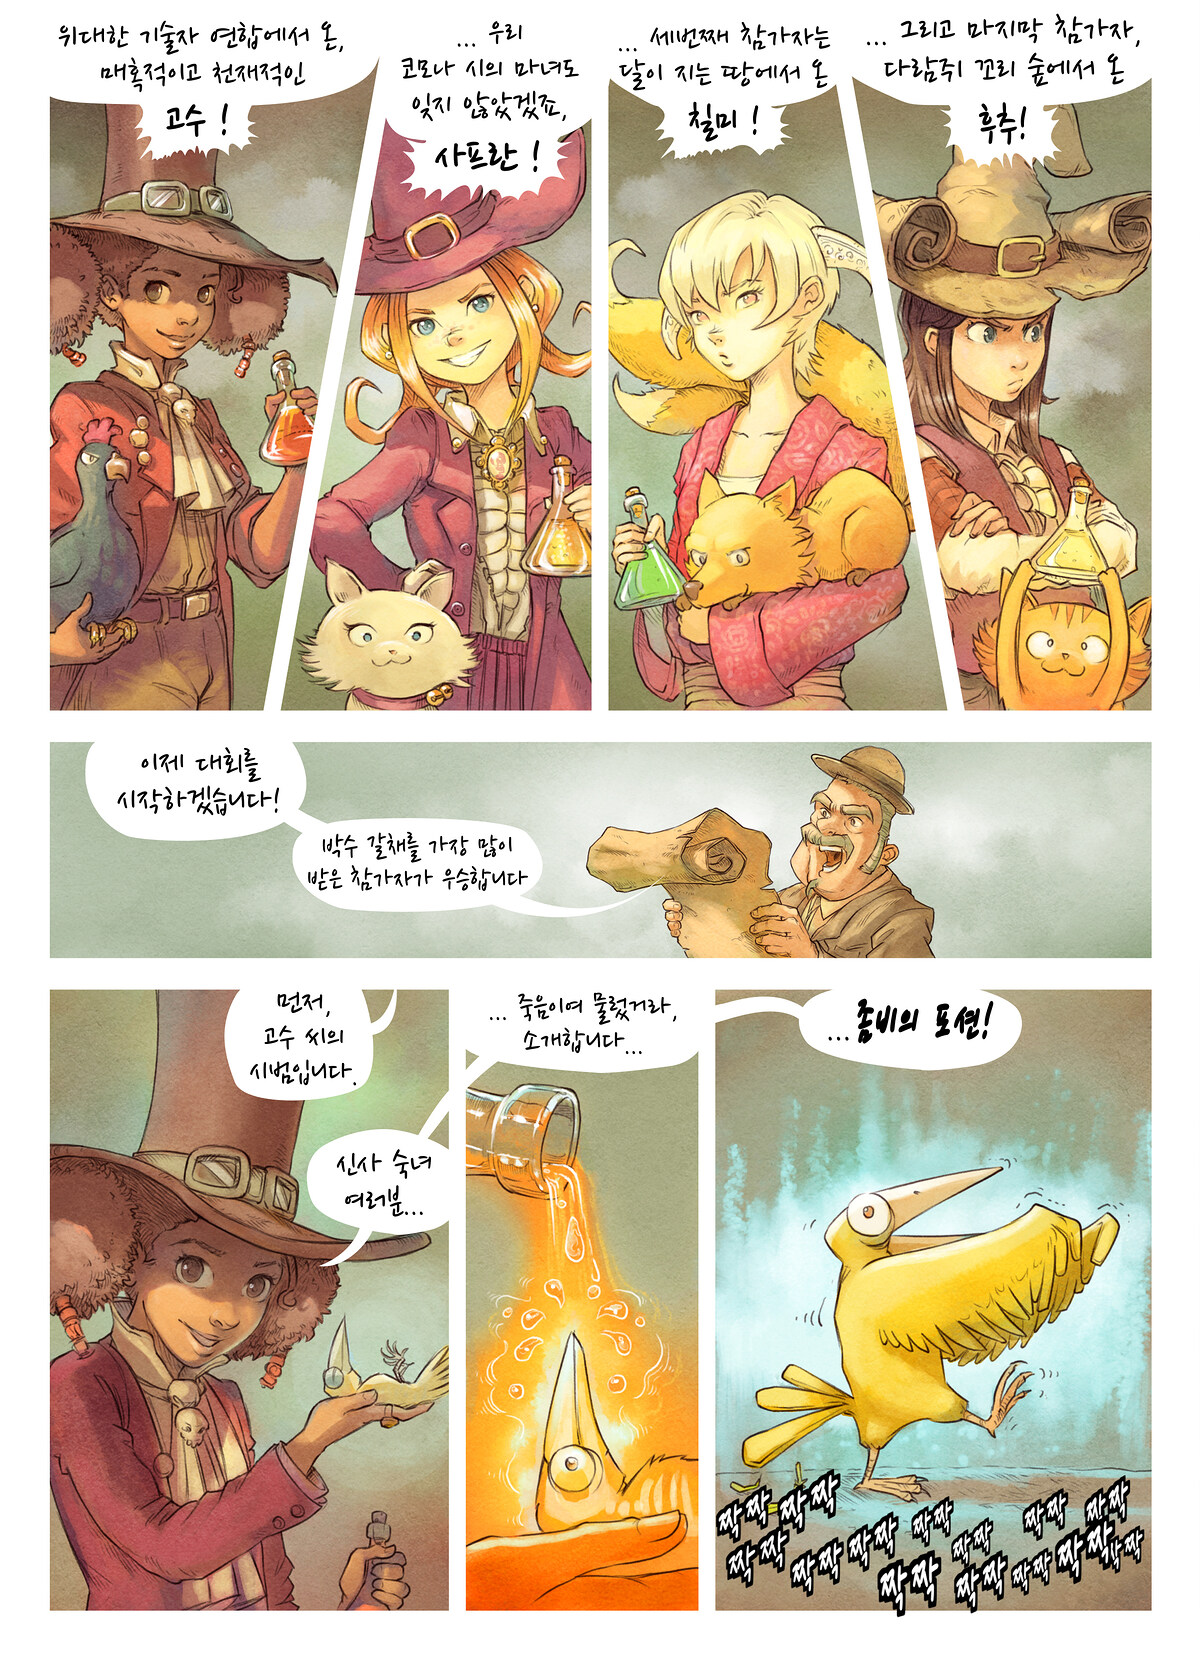 A webcomic page of Pepper&Carrot, 에피소드 6 [kr], 페이지 4